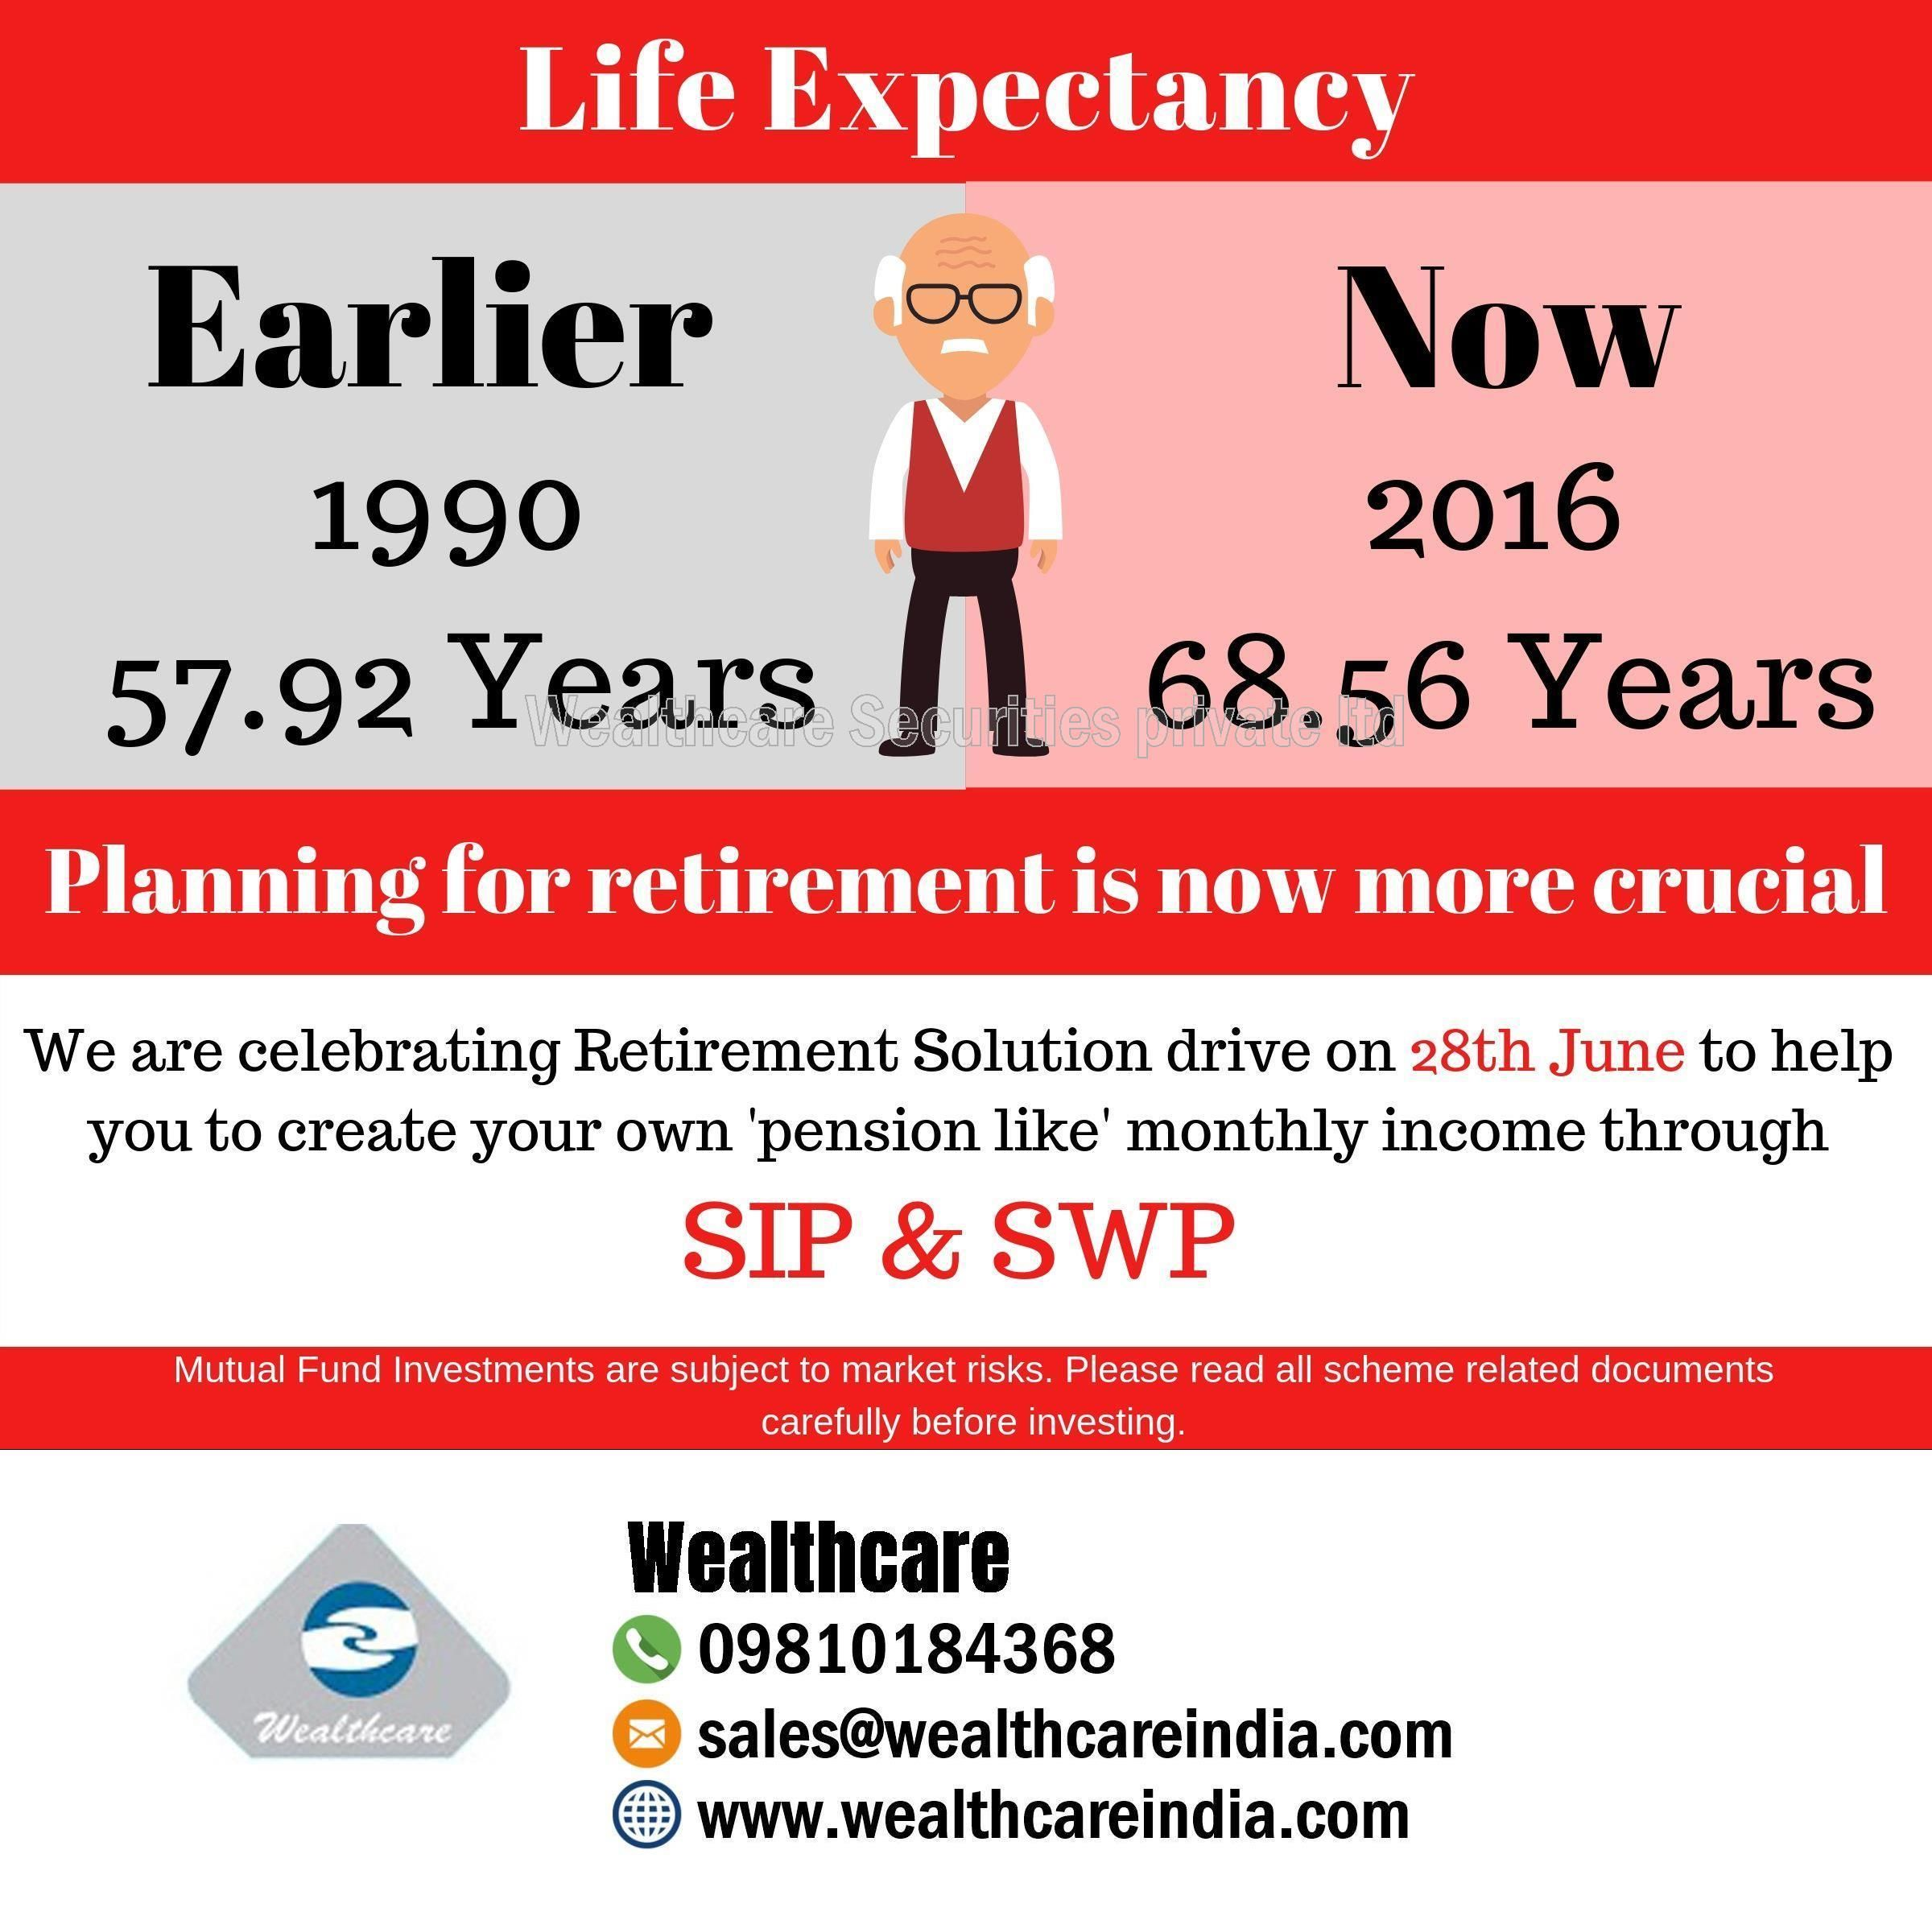 Planning For Retirement And Retirement Benefits Made Easier With